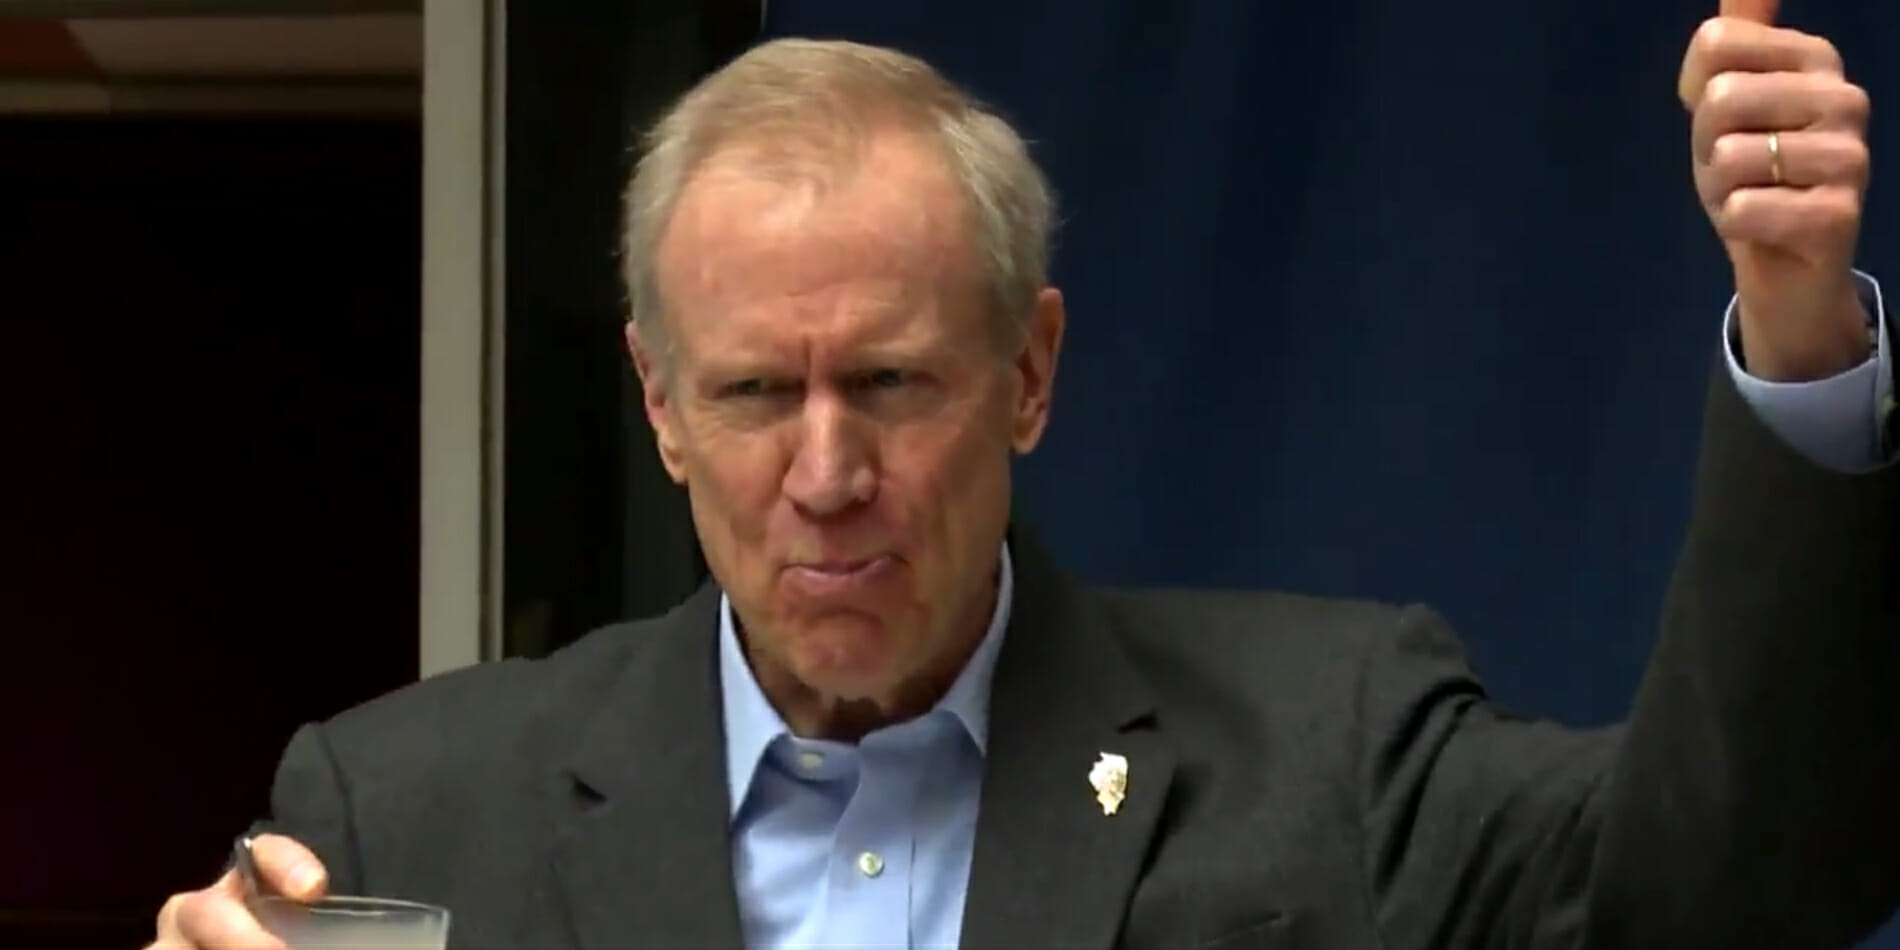 Illinois Governor Bruce Rauner drank chocolate milk to demonstrate his love for diversity.